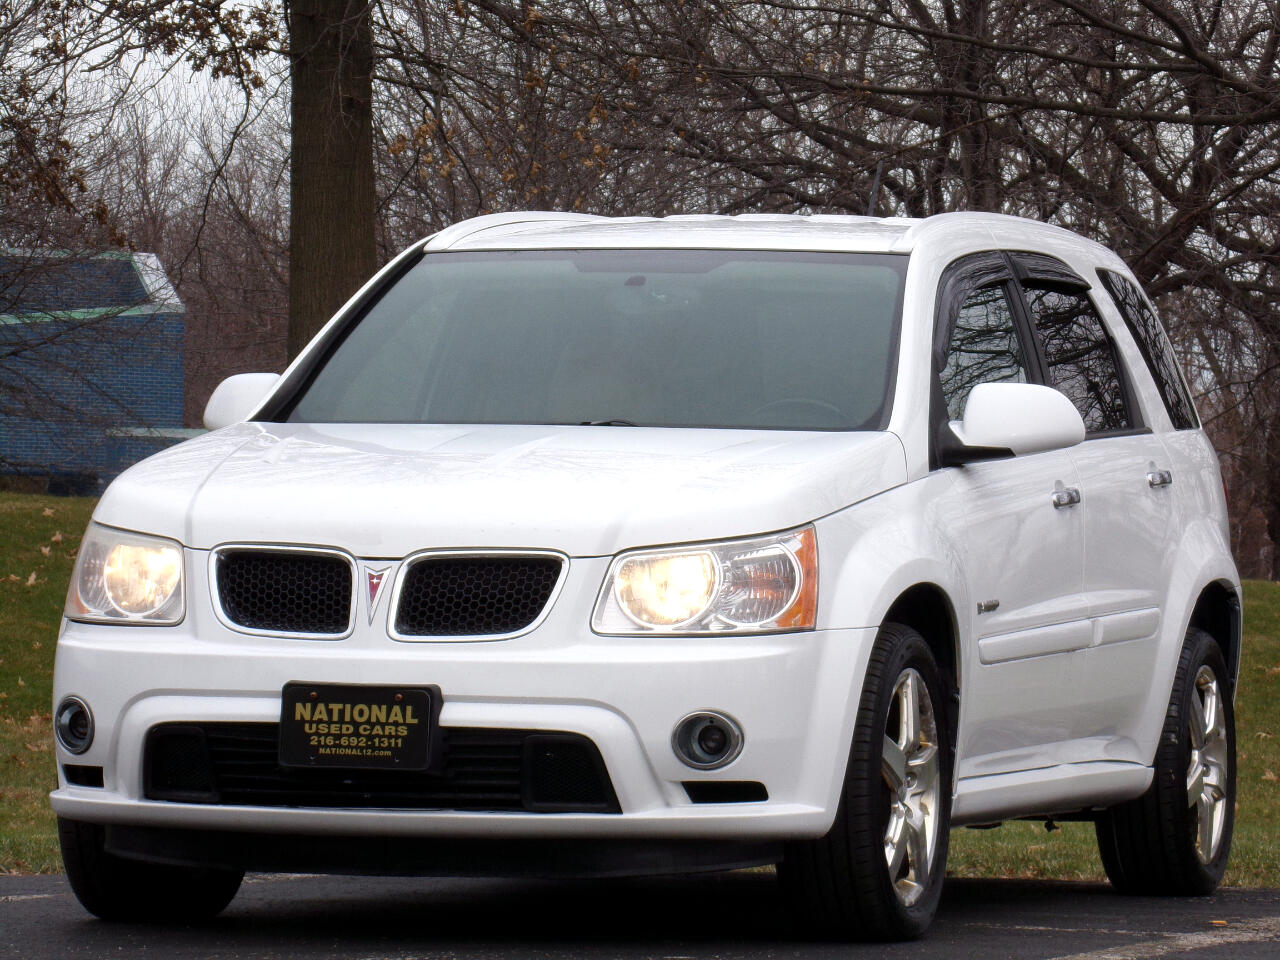 Pontiac Torrent AWD GXP 2008